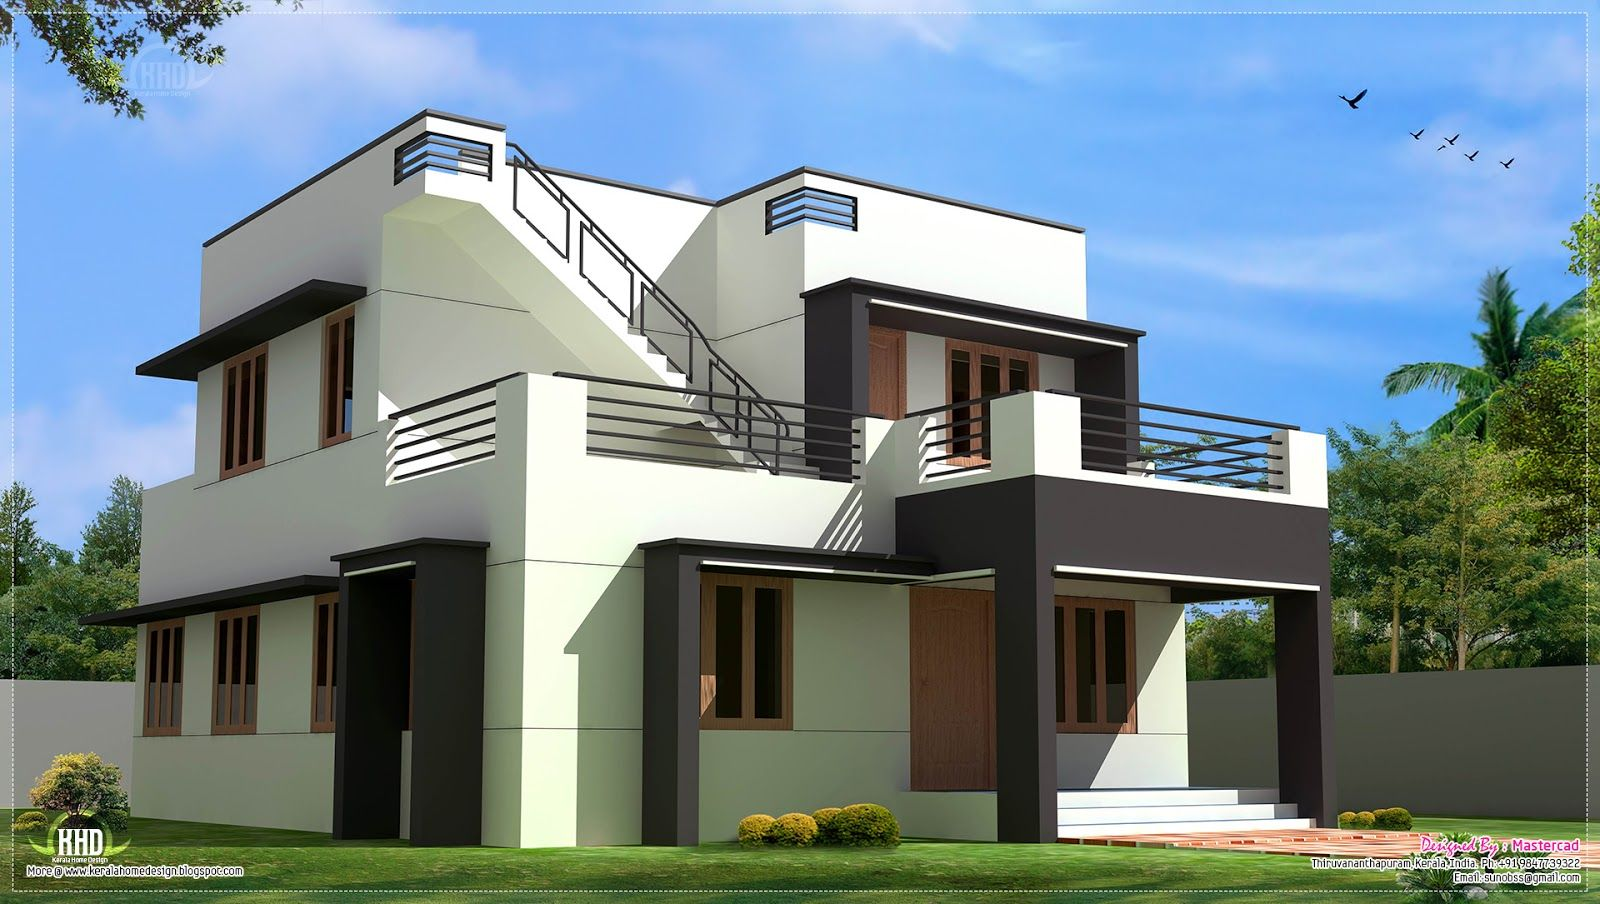 Kerala Home Design And Floor Plans: 2800 Sq. Description From Pinterest.com.